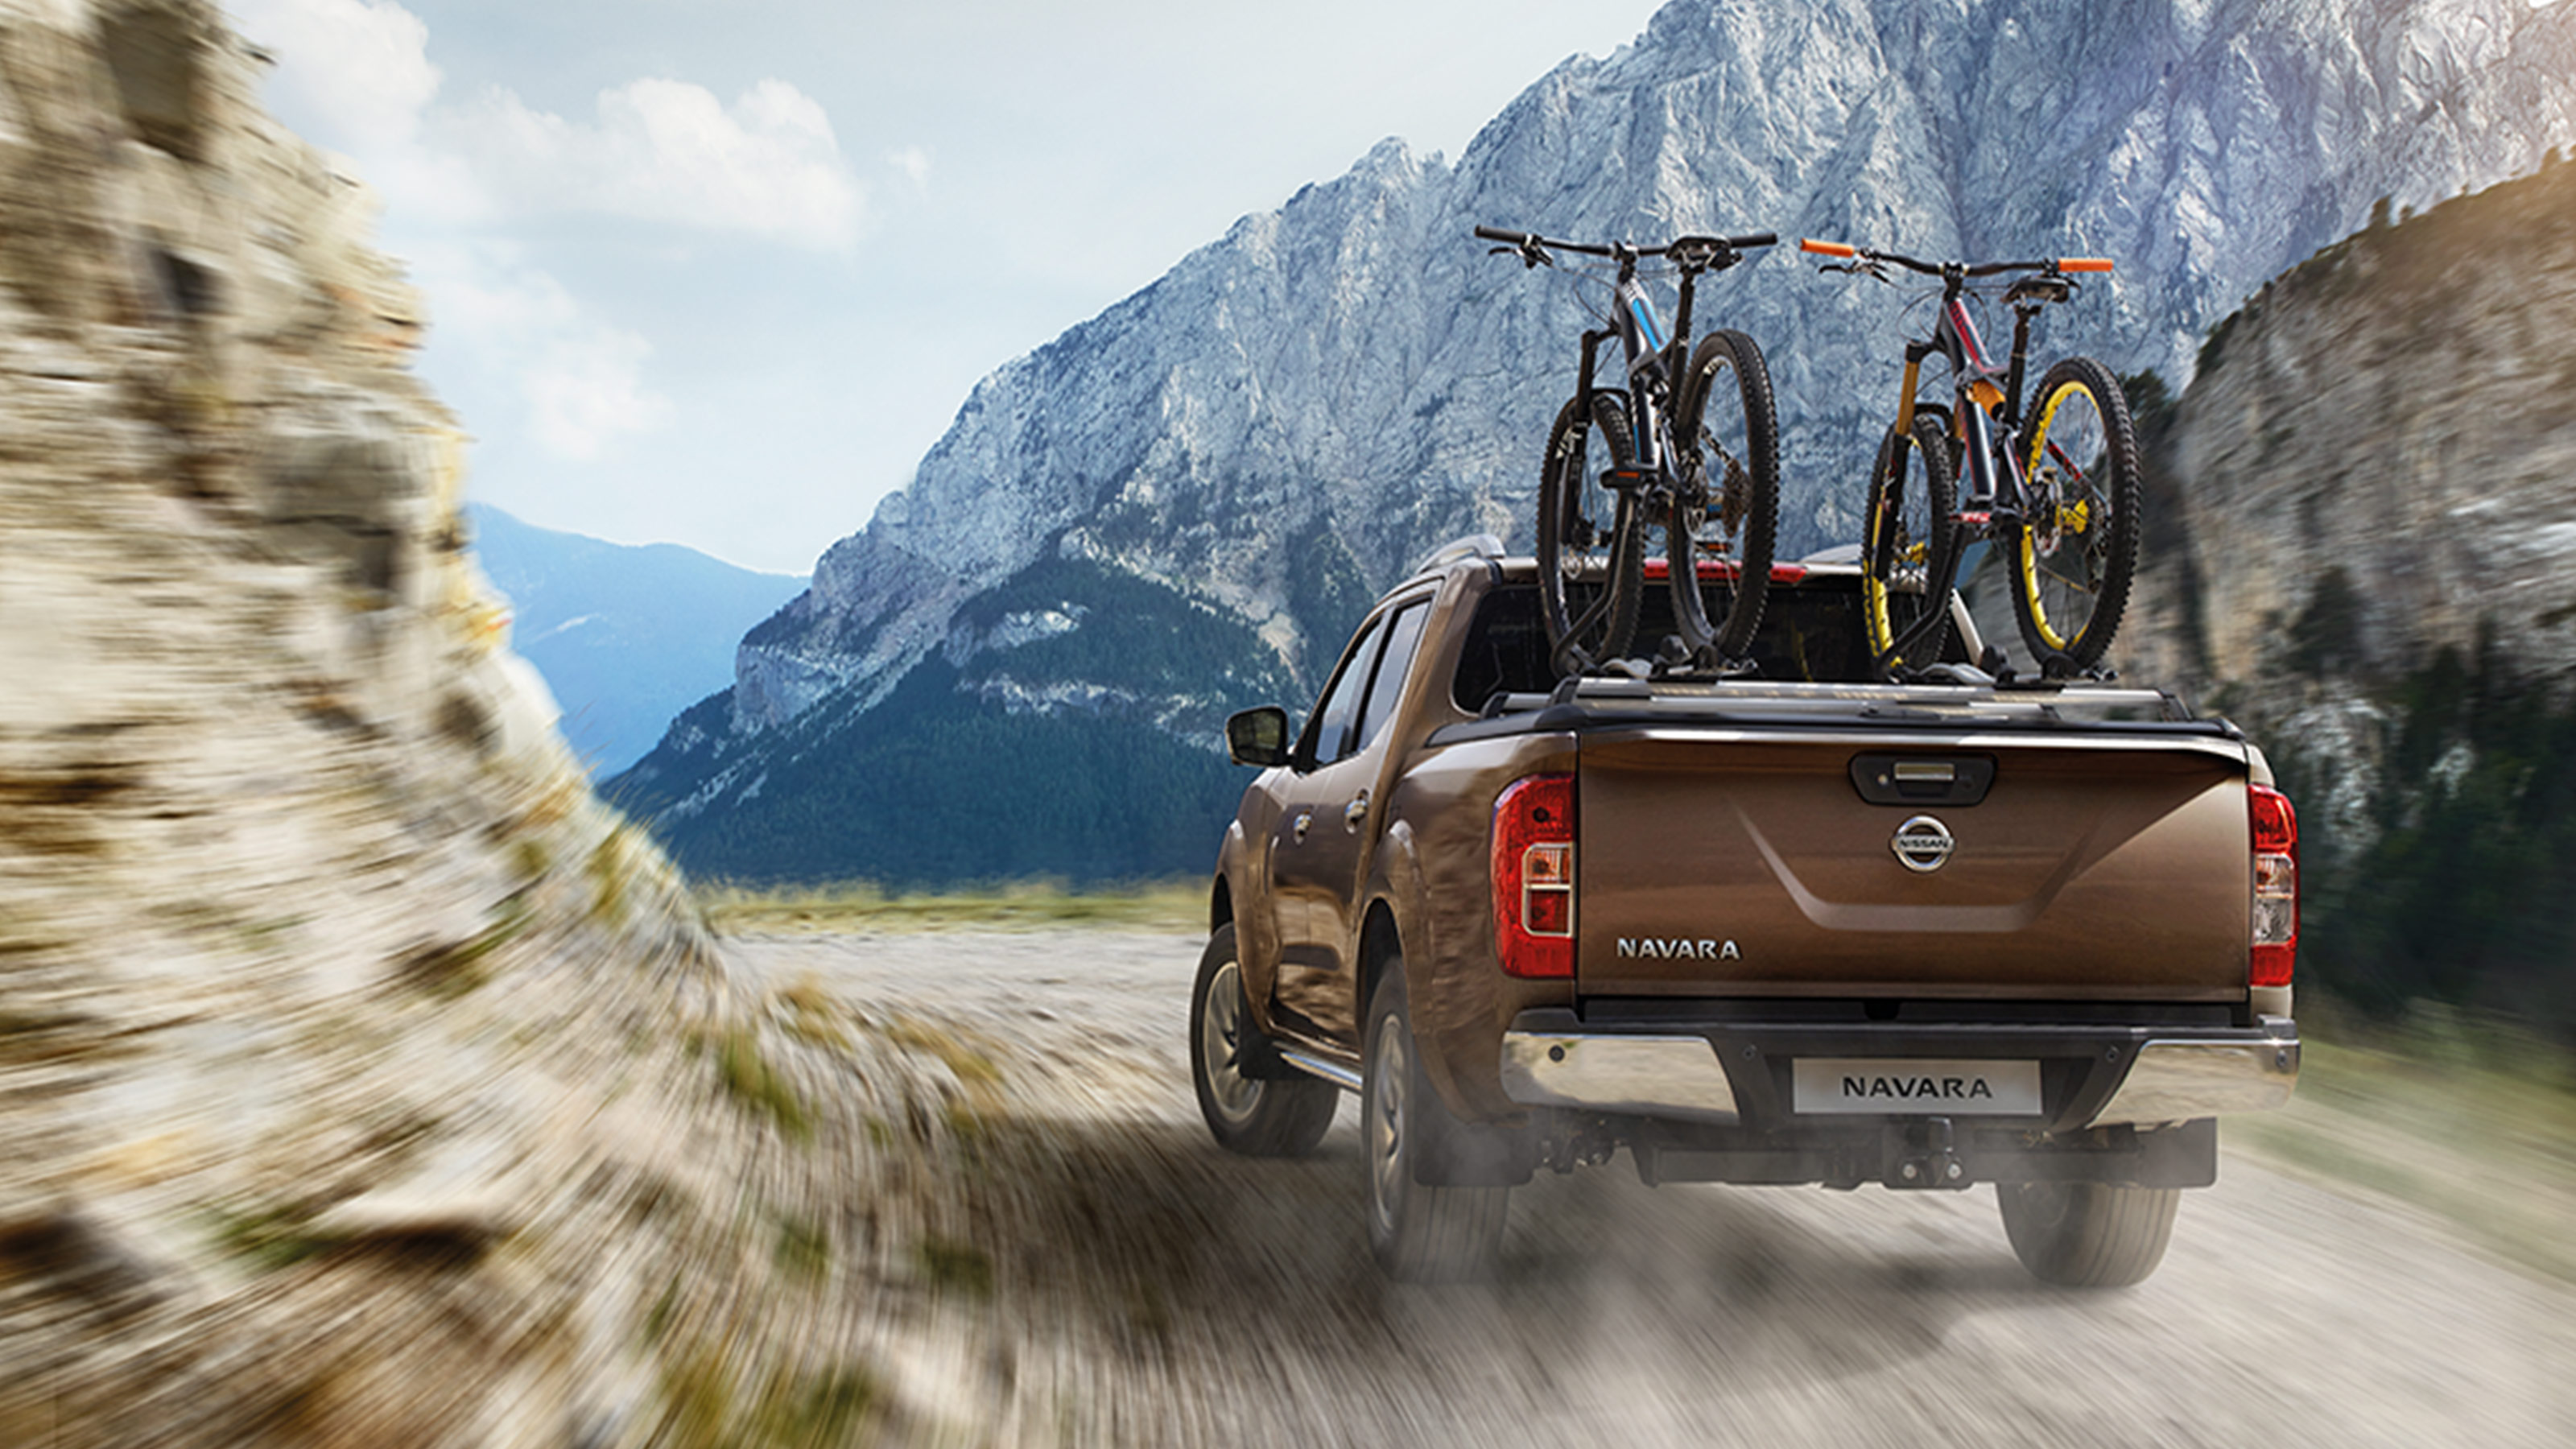 Nissan Navara rear driving shot with bikes on the bed